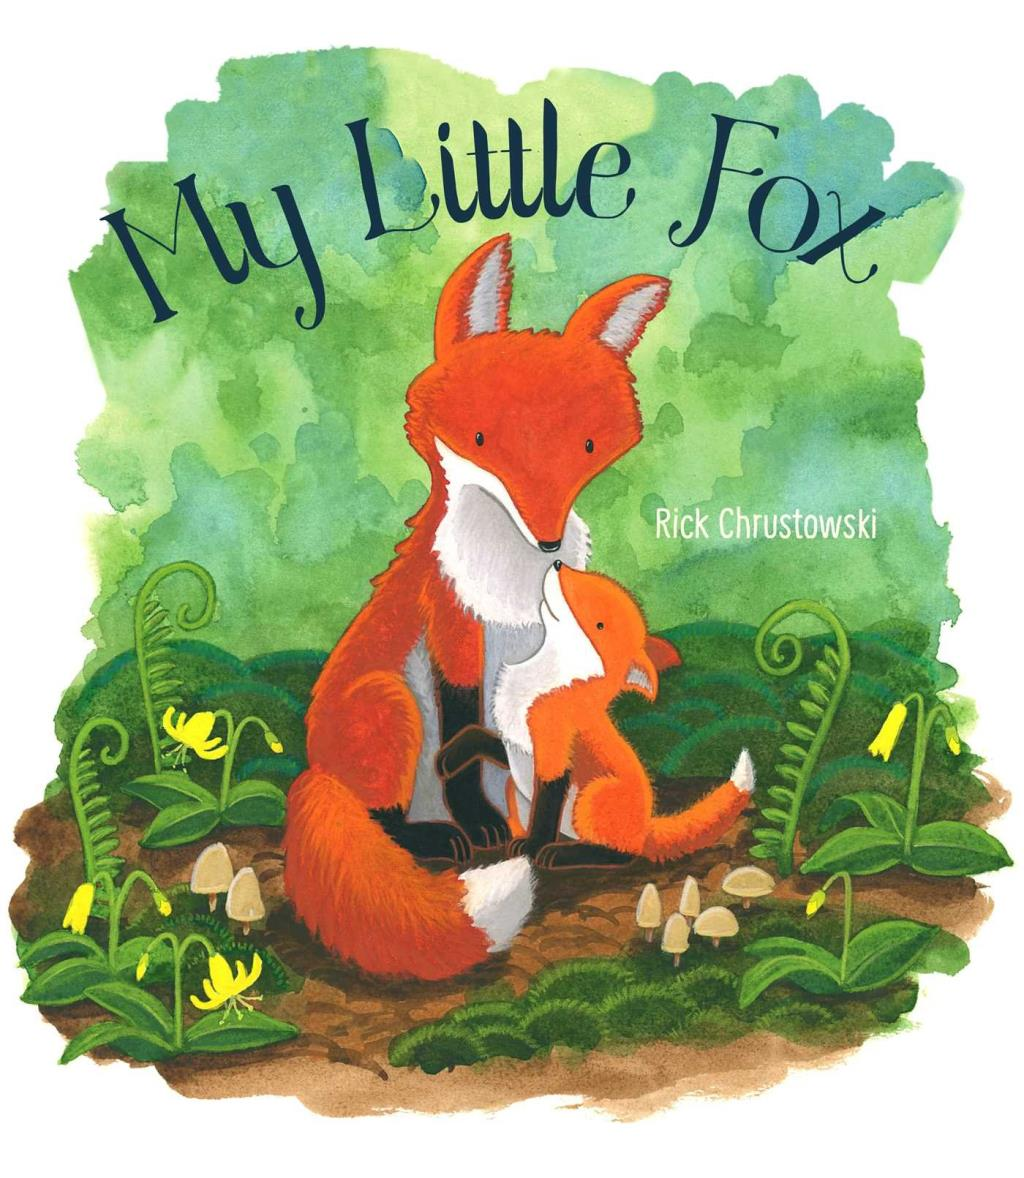 My Little Fox by Rick Chrustowski Simon & Schuster